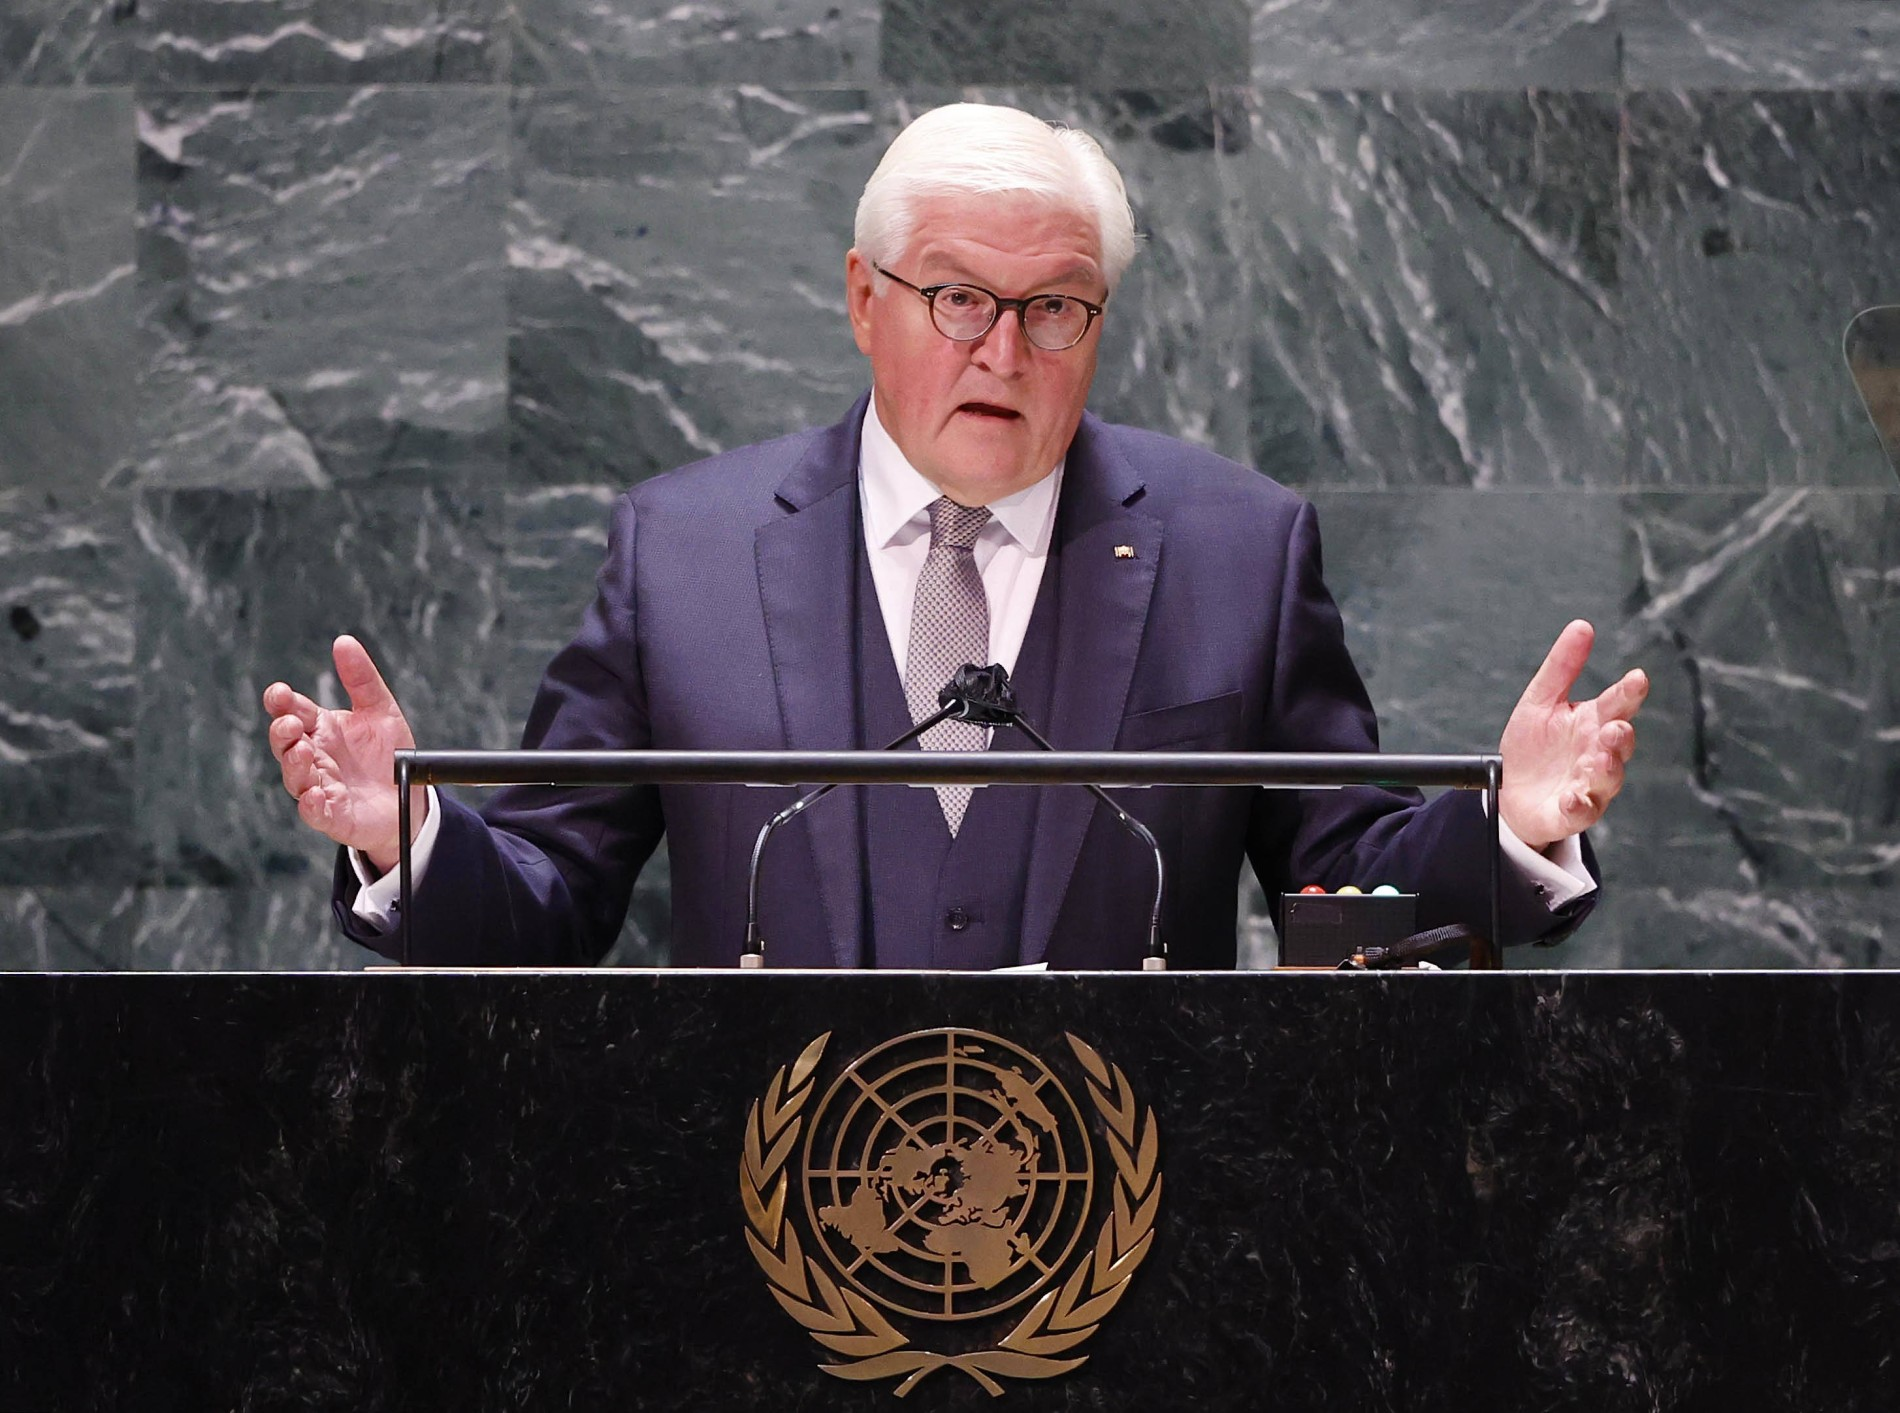 German President Counts Lessons of Afghan Failure